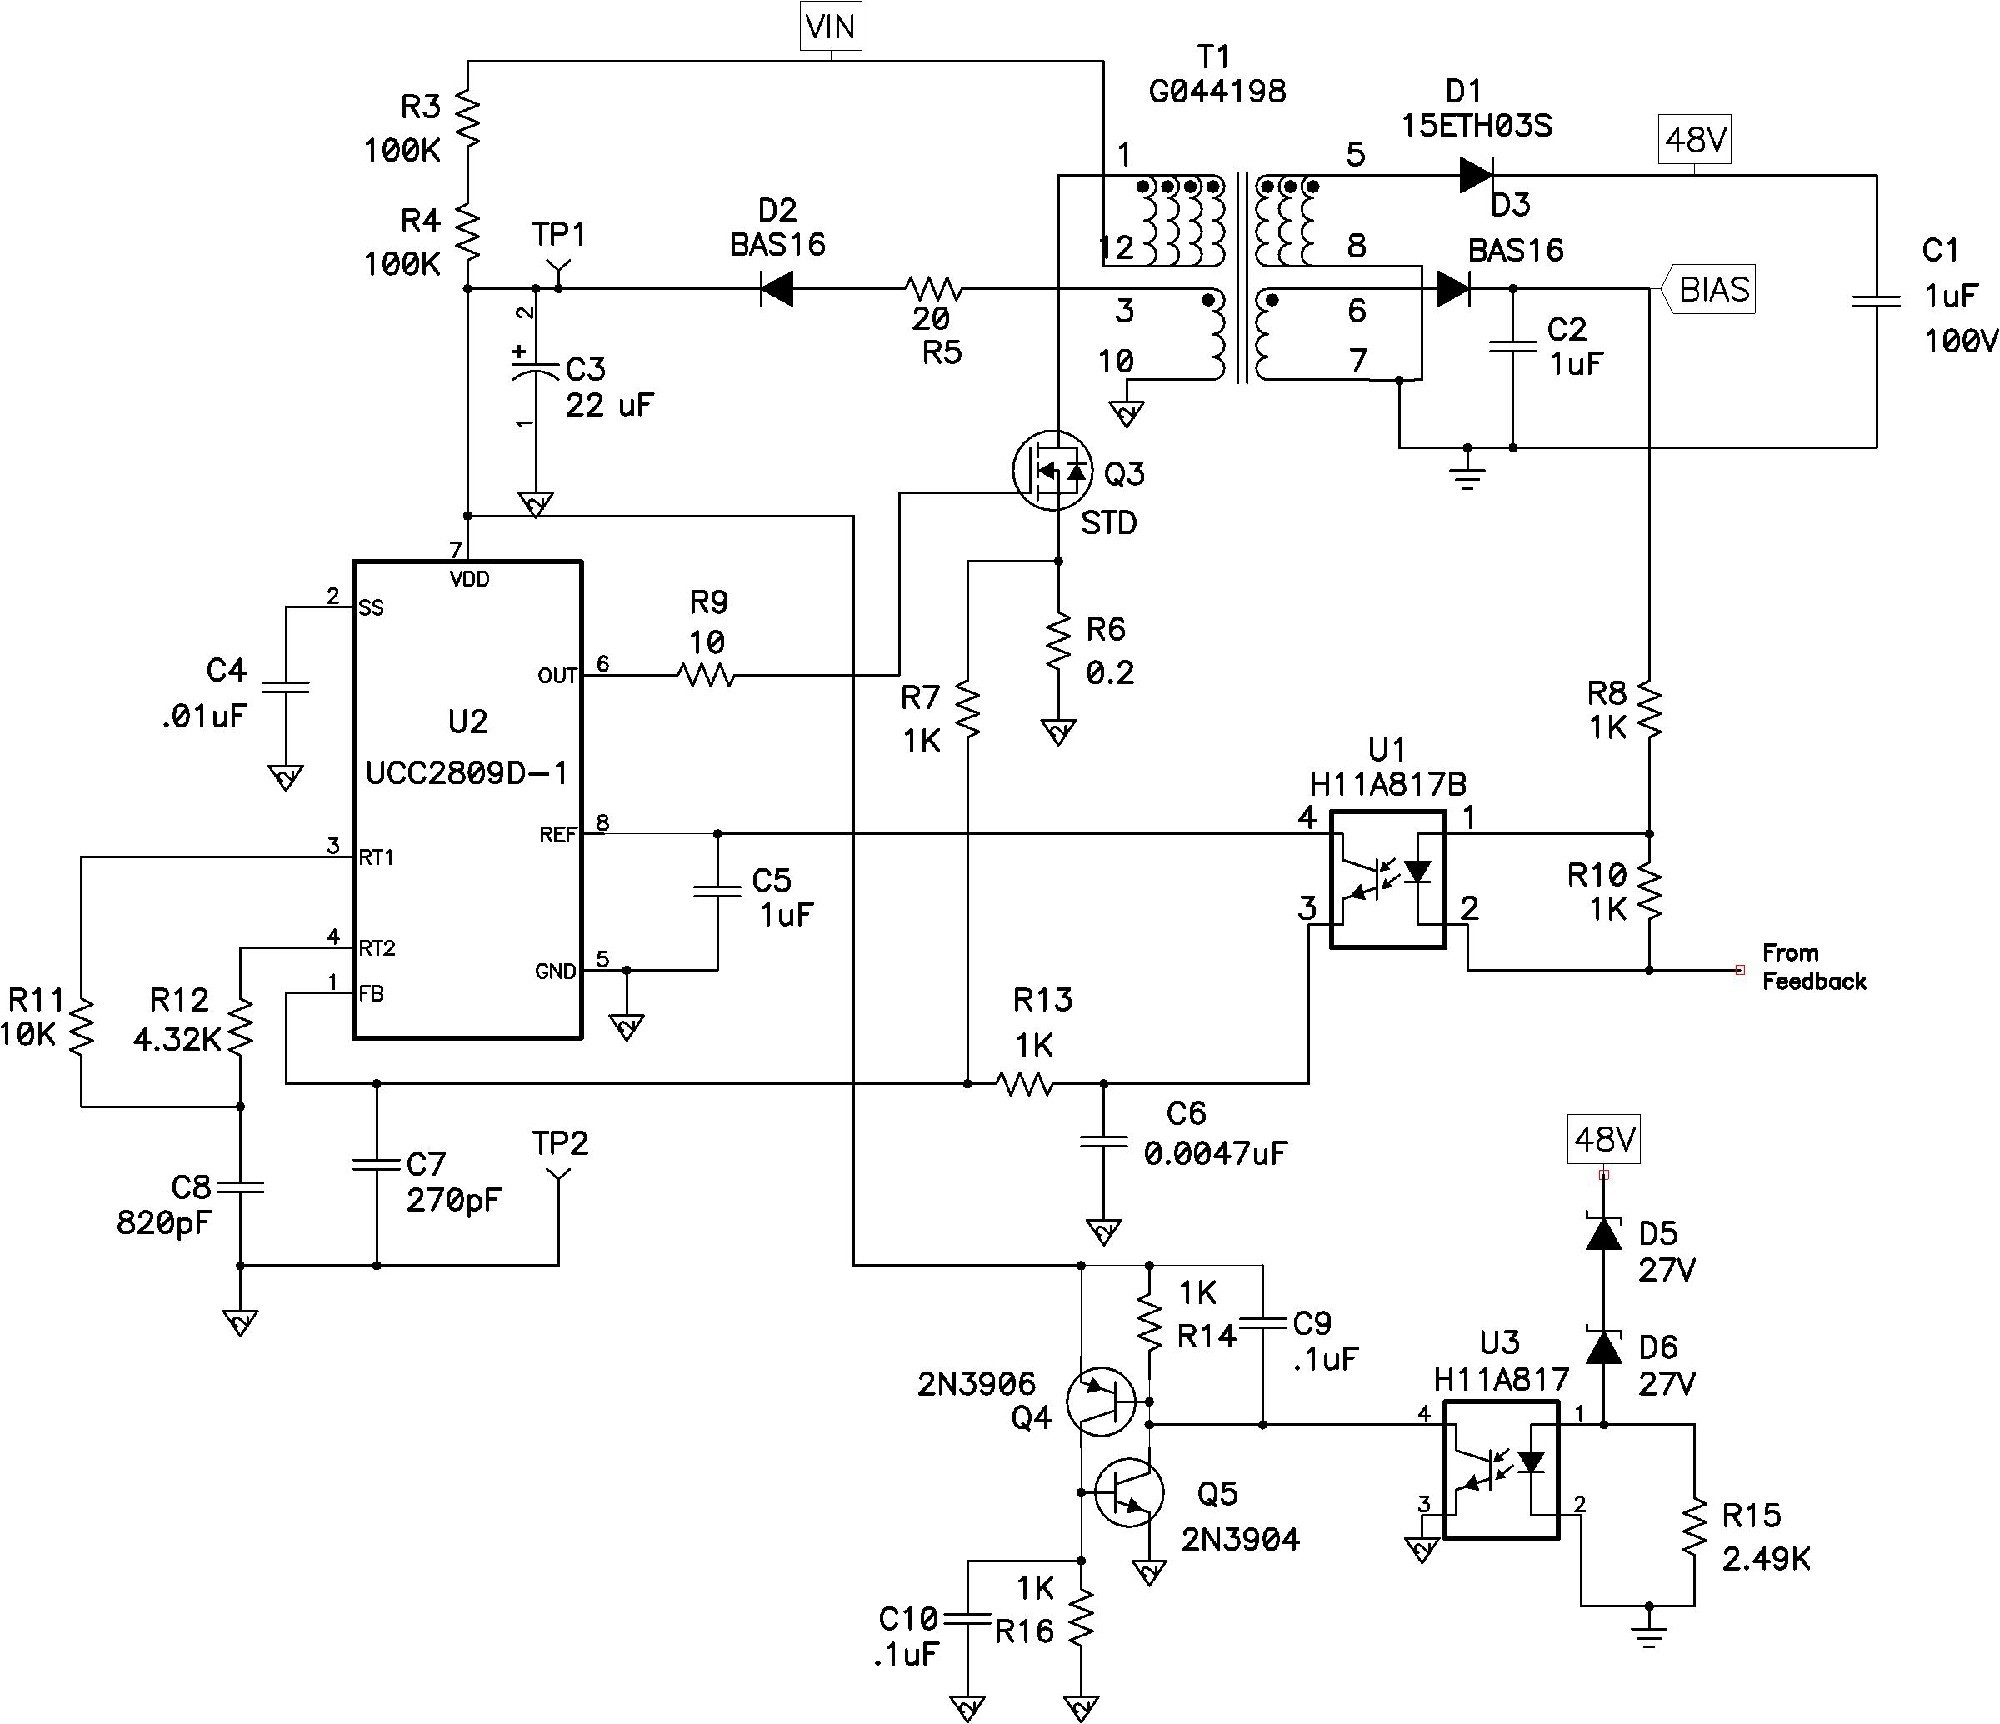 tattoo power supply wiring diagram Download-Tattoo Power Supply Wiring Diagram Luxury Multi Power source Using Different sources for No Break Block 3-t